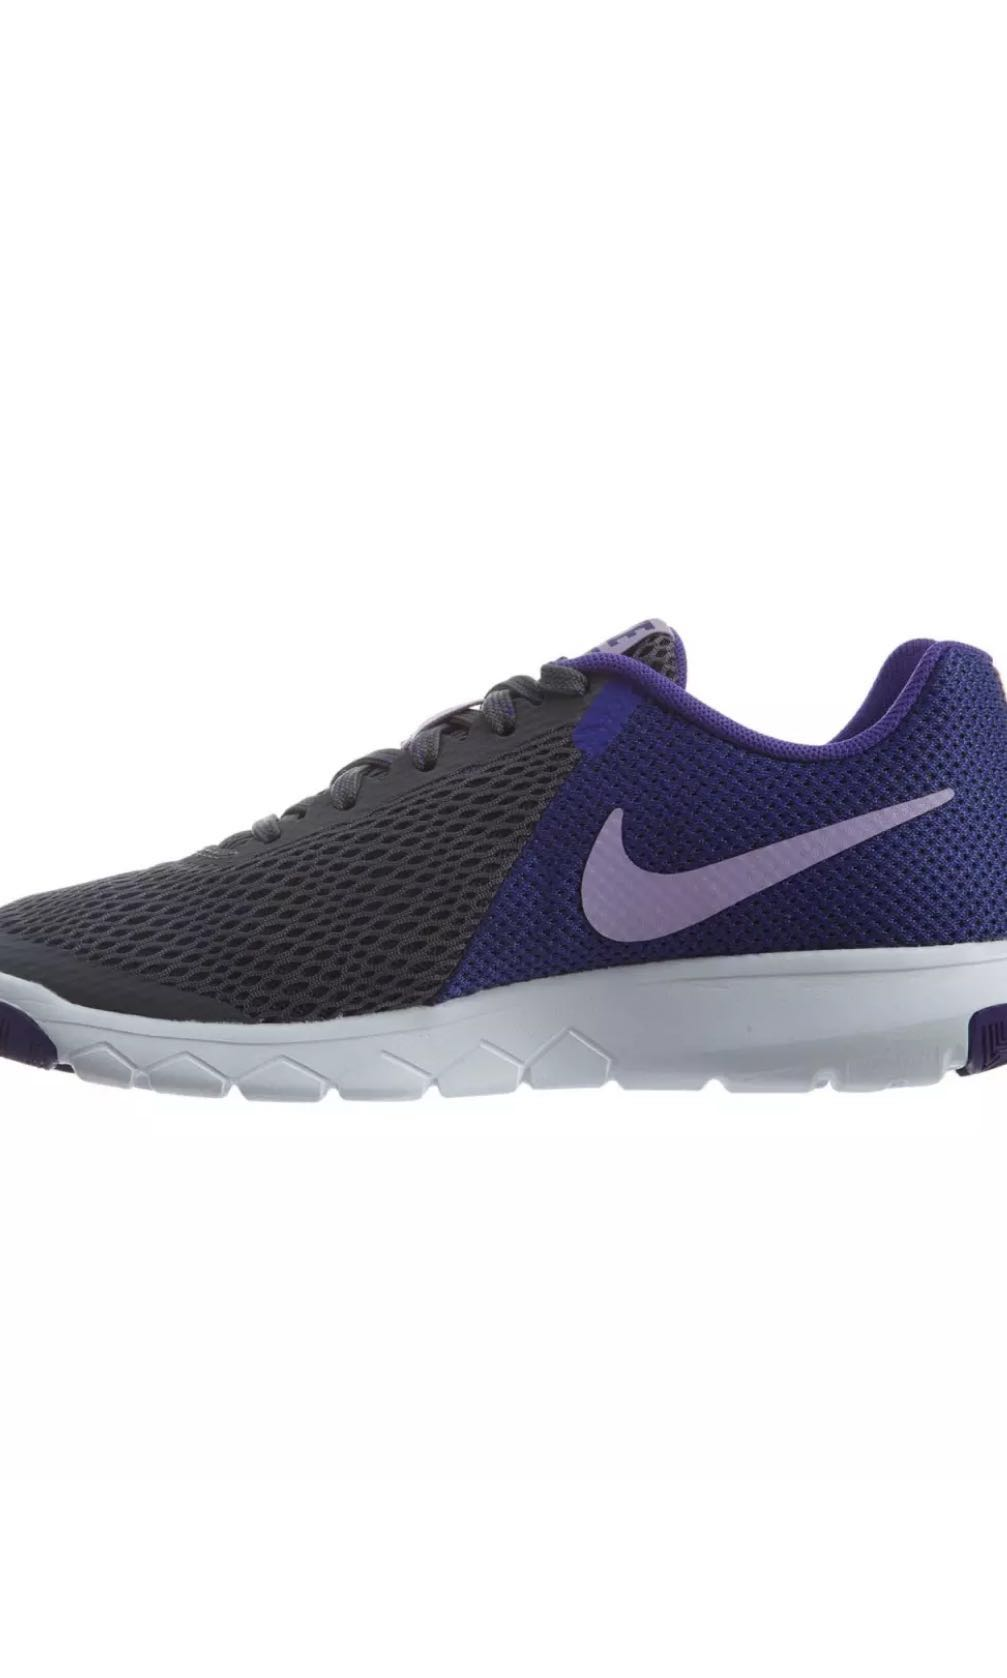 c0ee47331cbb Nike WMNS Flex Experience RN 5 Running Shoes for Women (Grey Violet ...